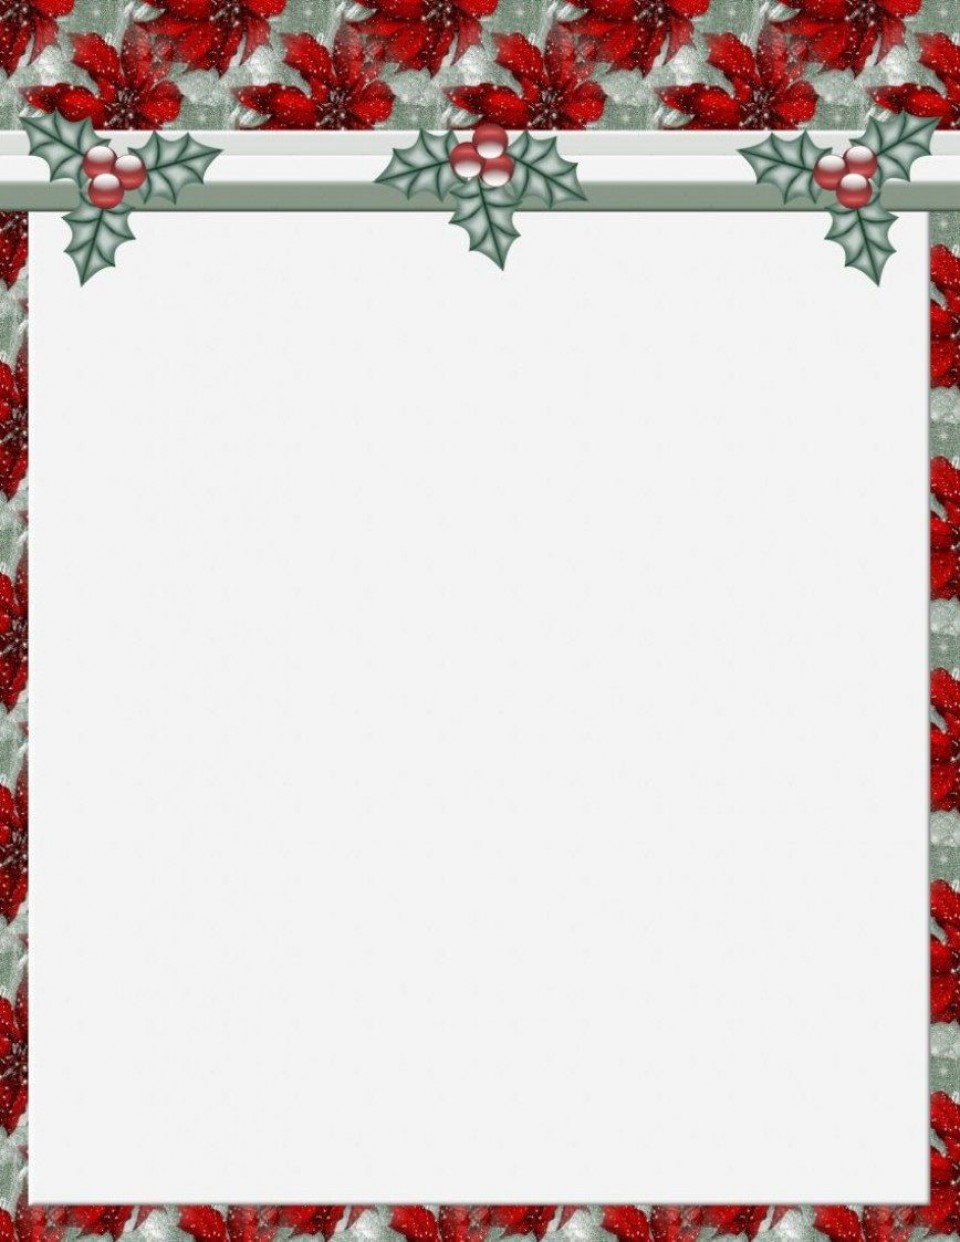 011 Stunning Free Holiday Stationery Template For Word Highest Clarity 960